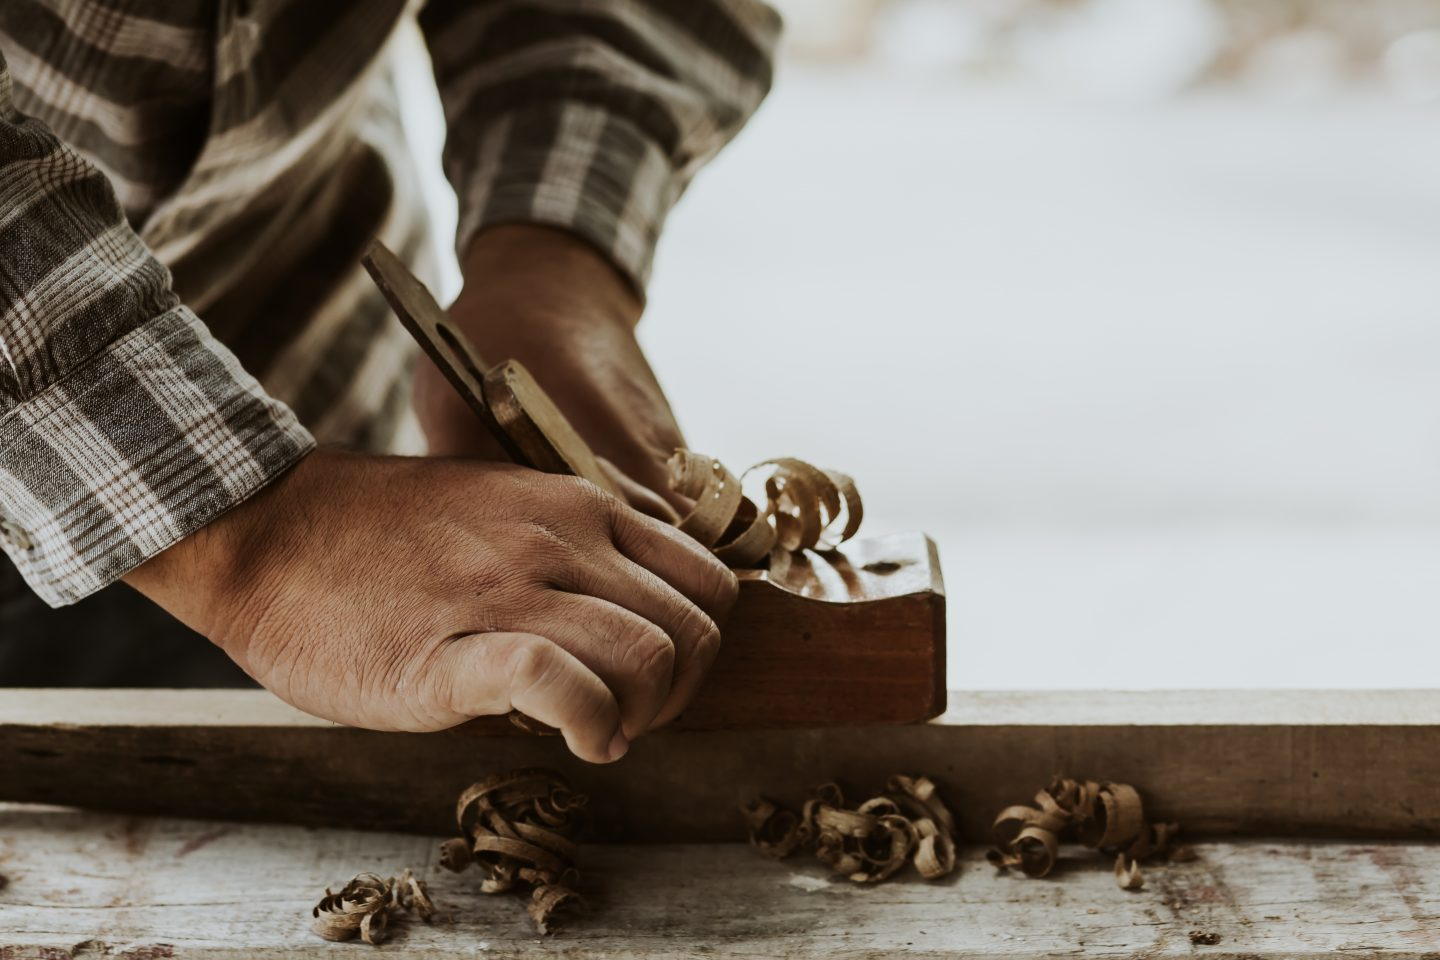 Carpenters experienced wood is using spokeshave to decorate the furniture